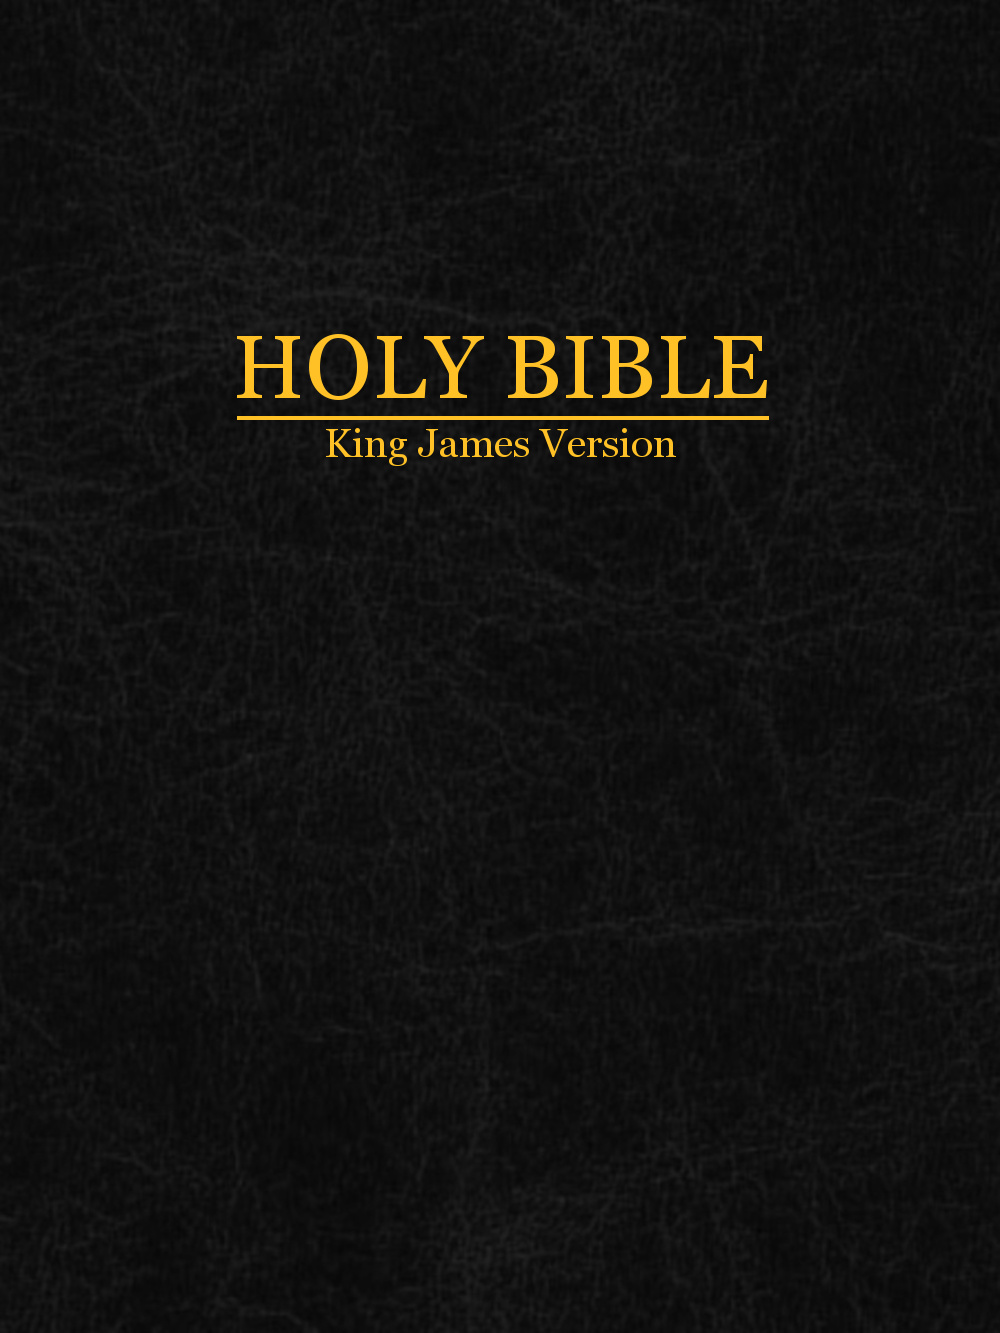 an introduction to the king james version of the holy bible This attractive, paperback edition of the holy bible (king james version)  each  book has an introduction/background, and each page has subject headings.